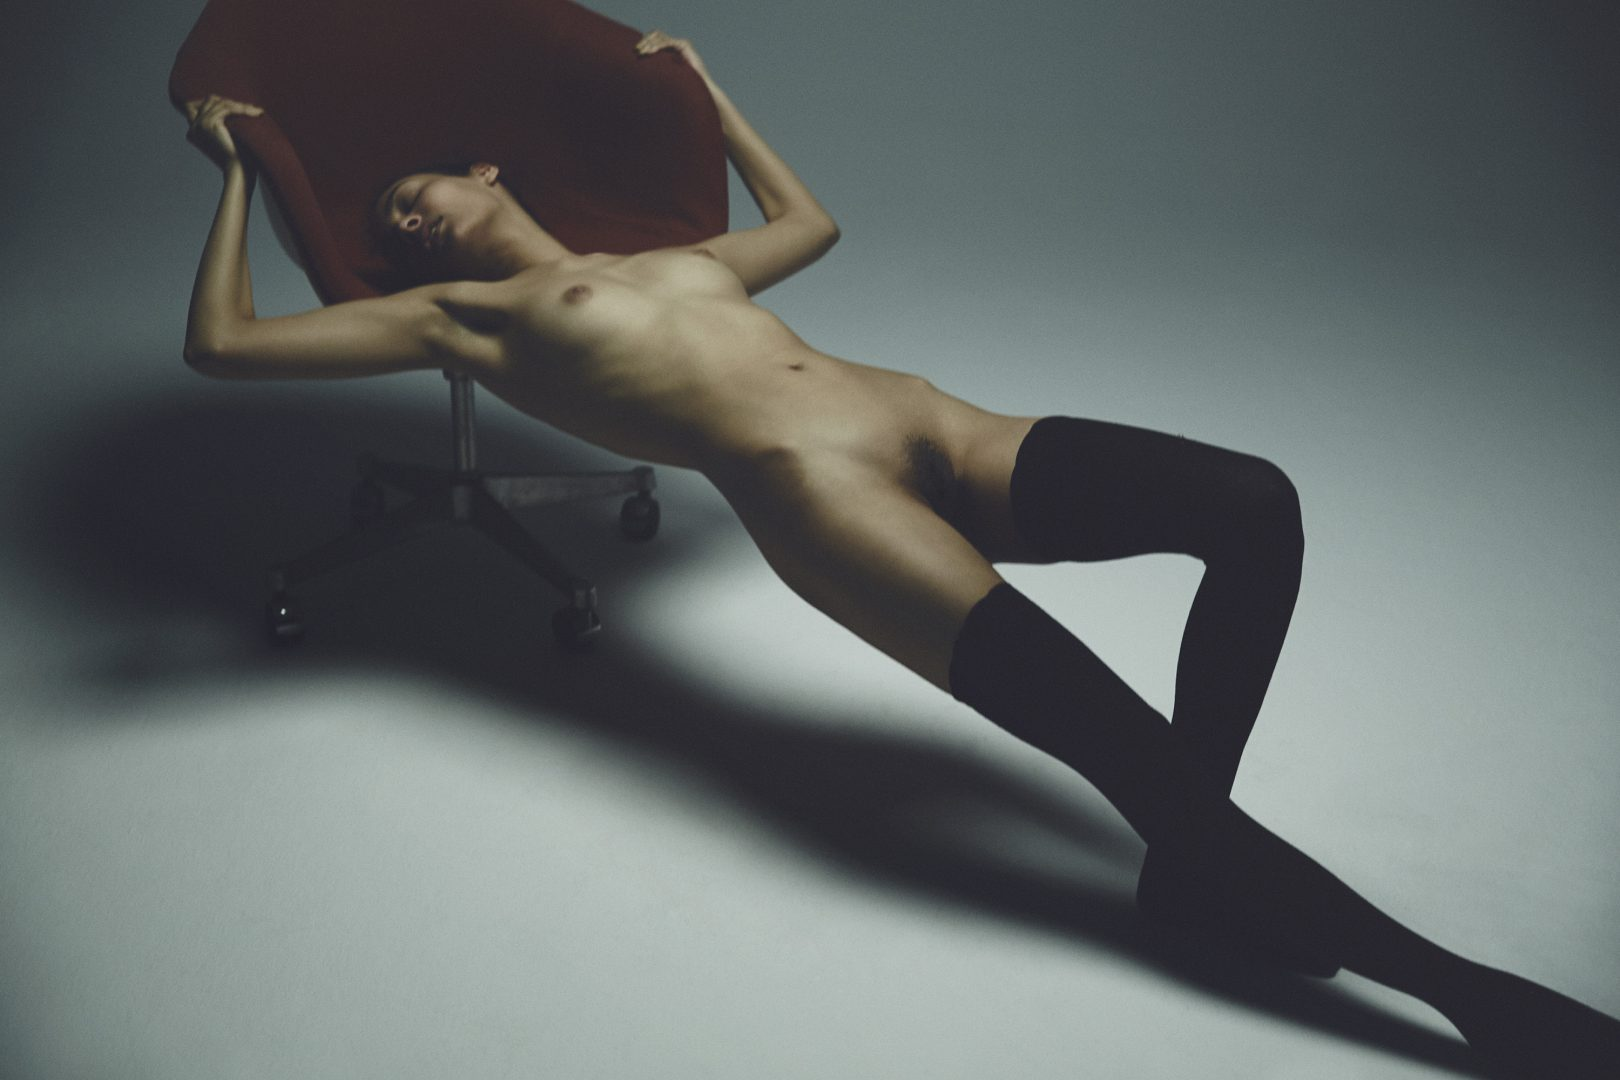 Girl lying naked on chair by Stefan Rappo